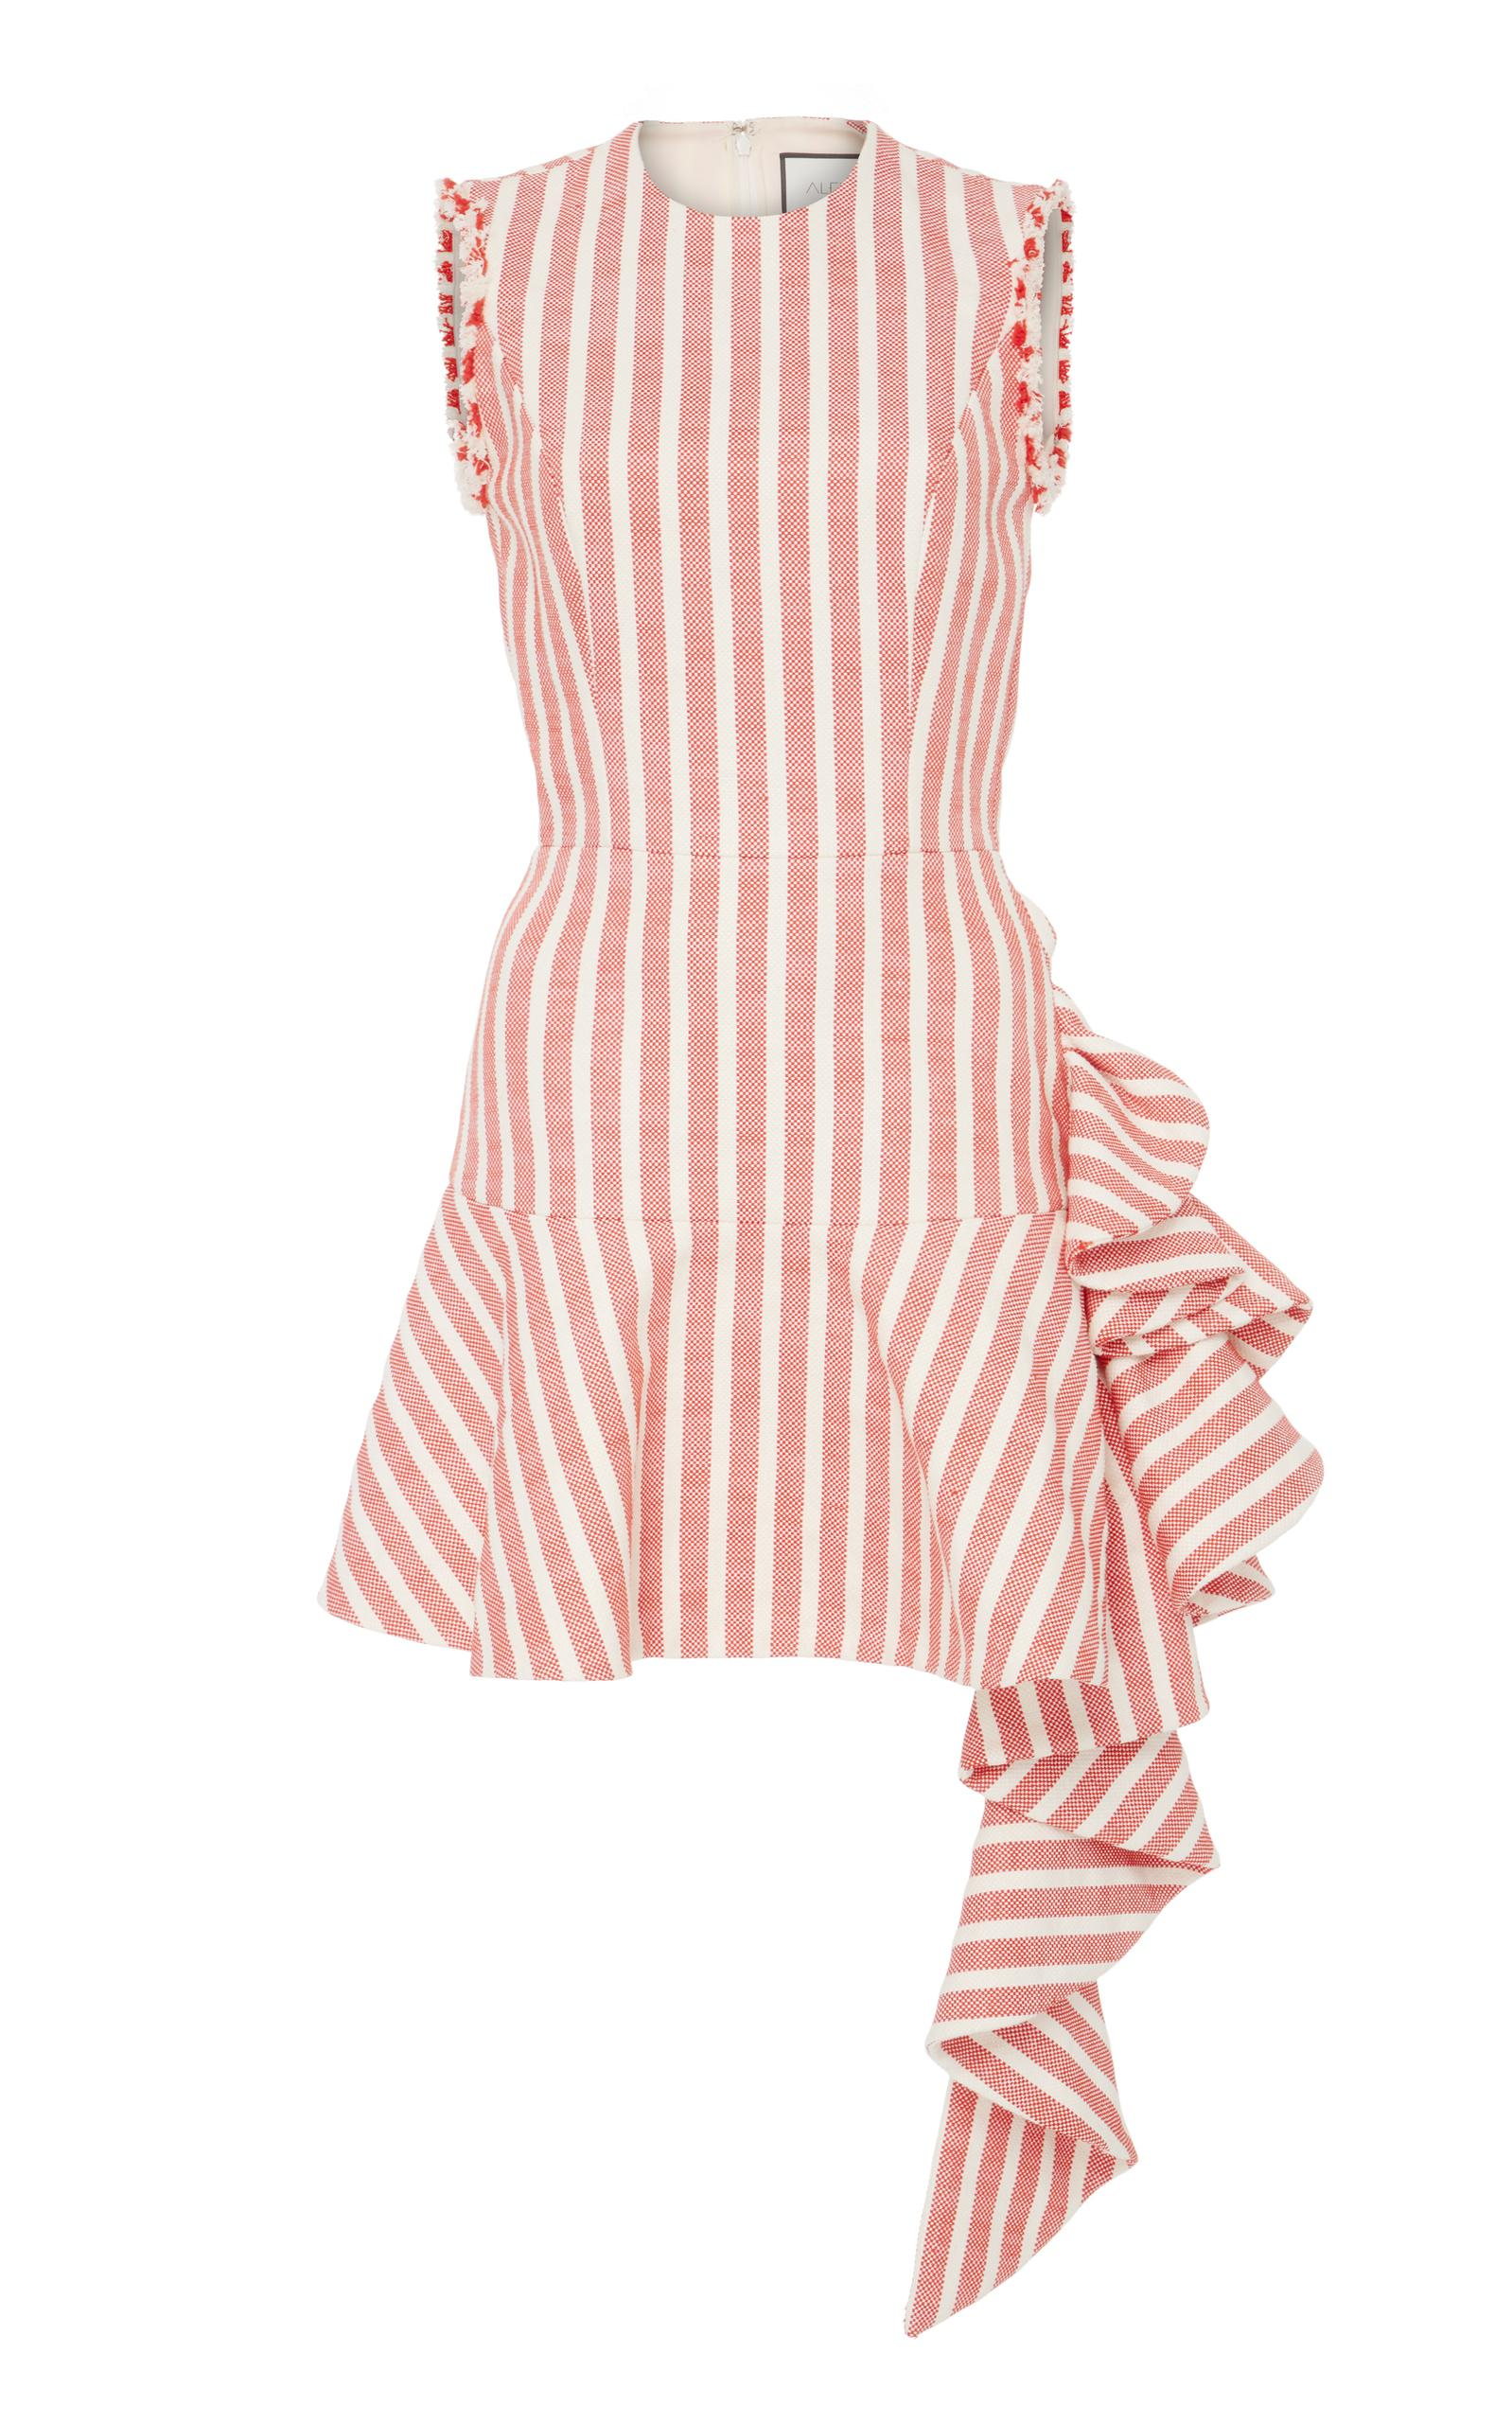 0e1de2b70876 Alexis Cara Sleeveless Slim-Fit Striped Cotton Cocktail Dress In Red ...